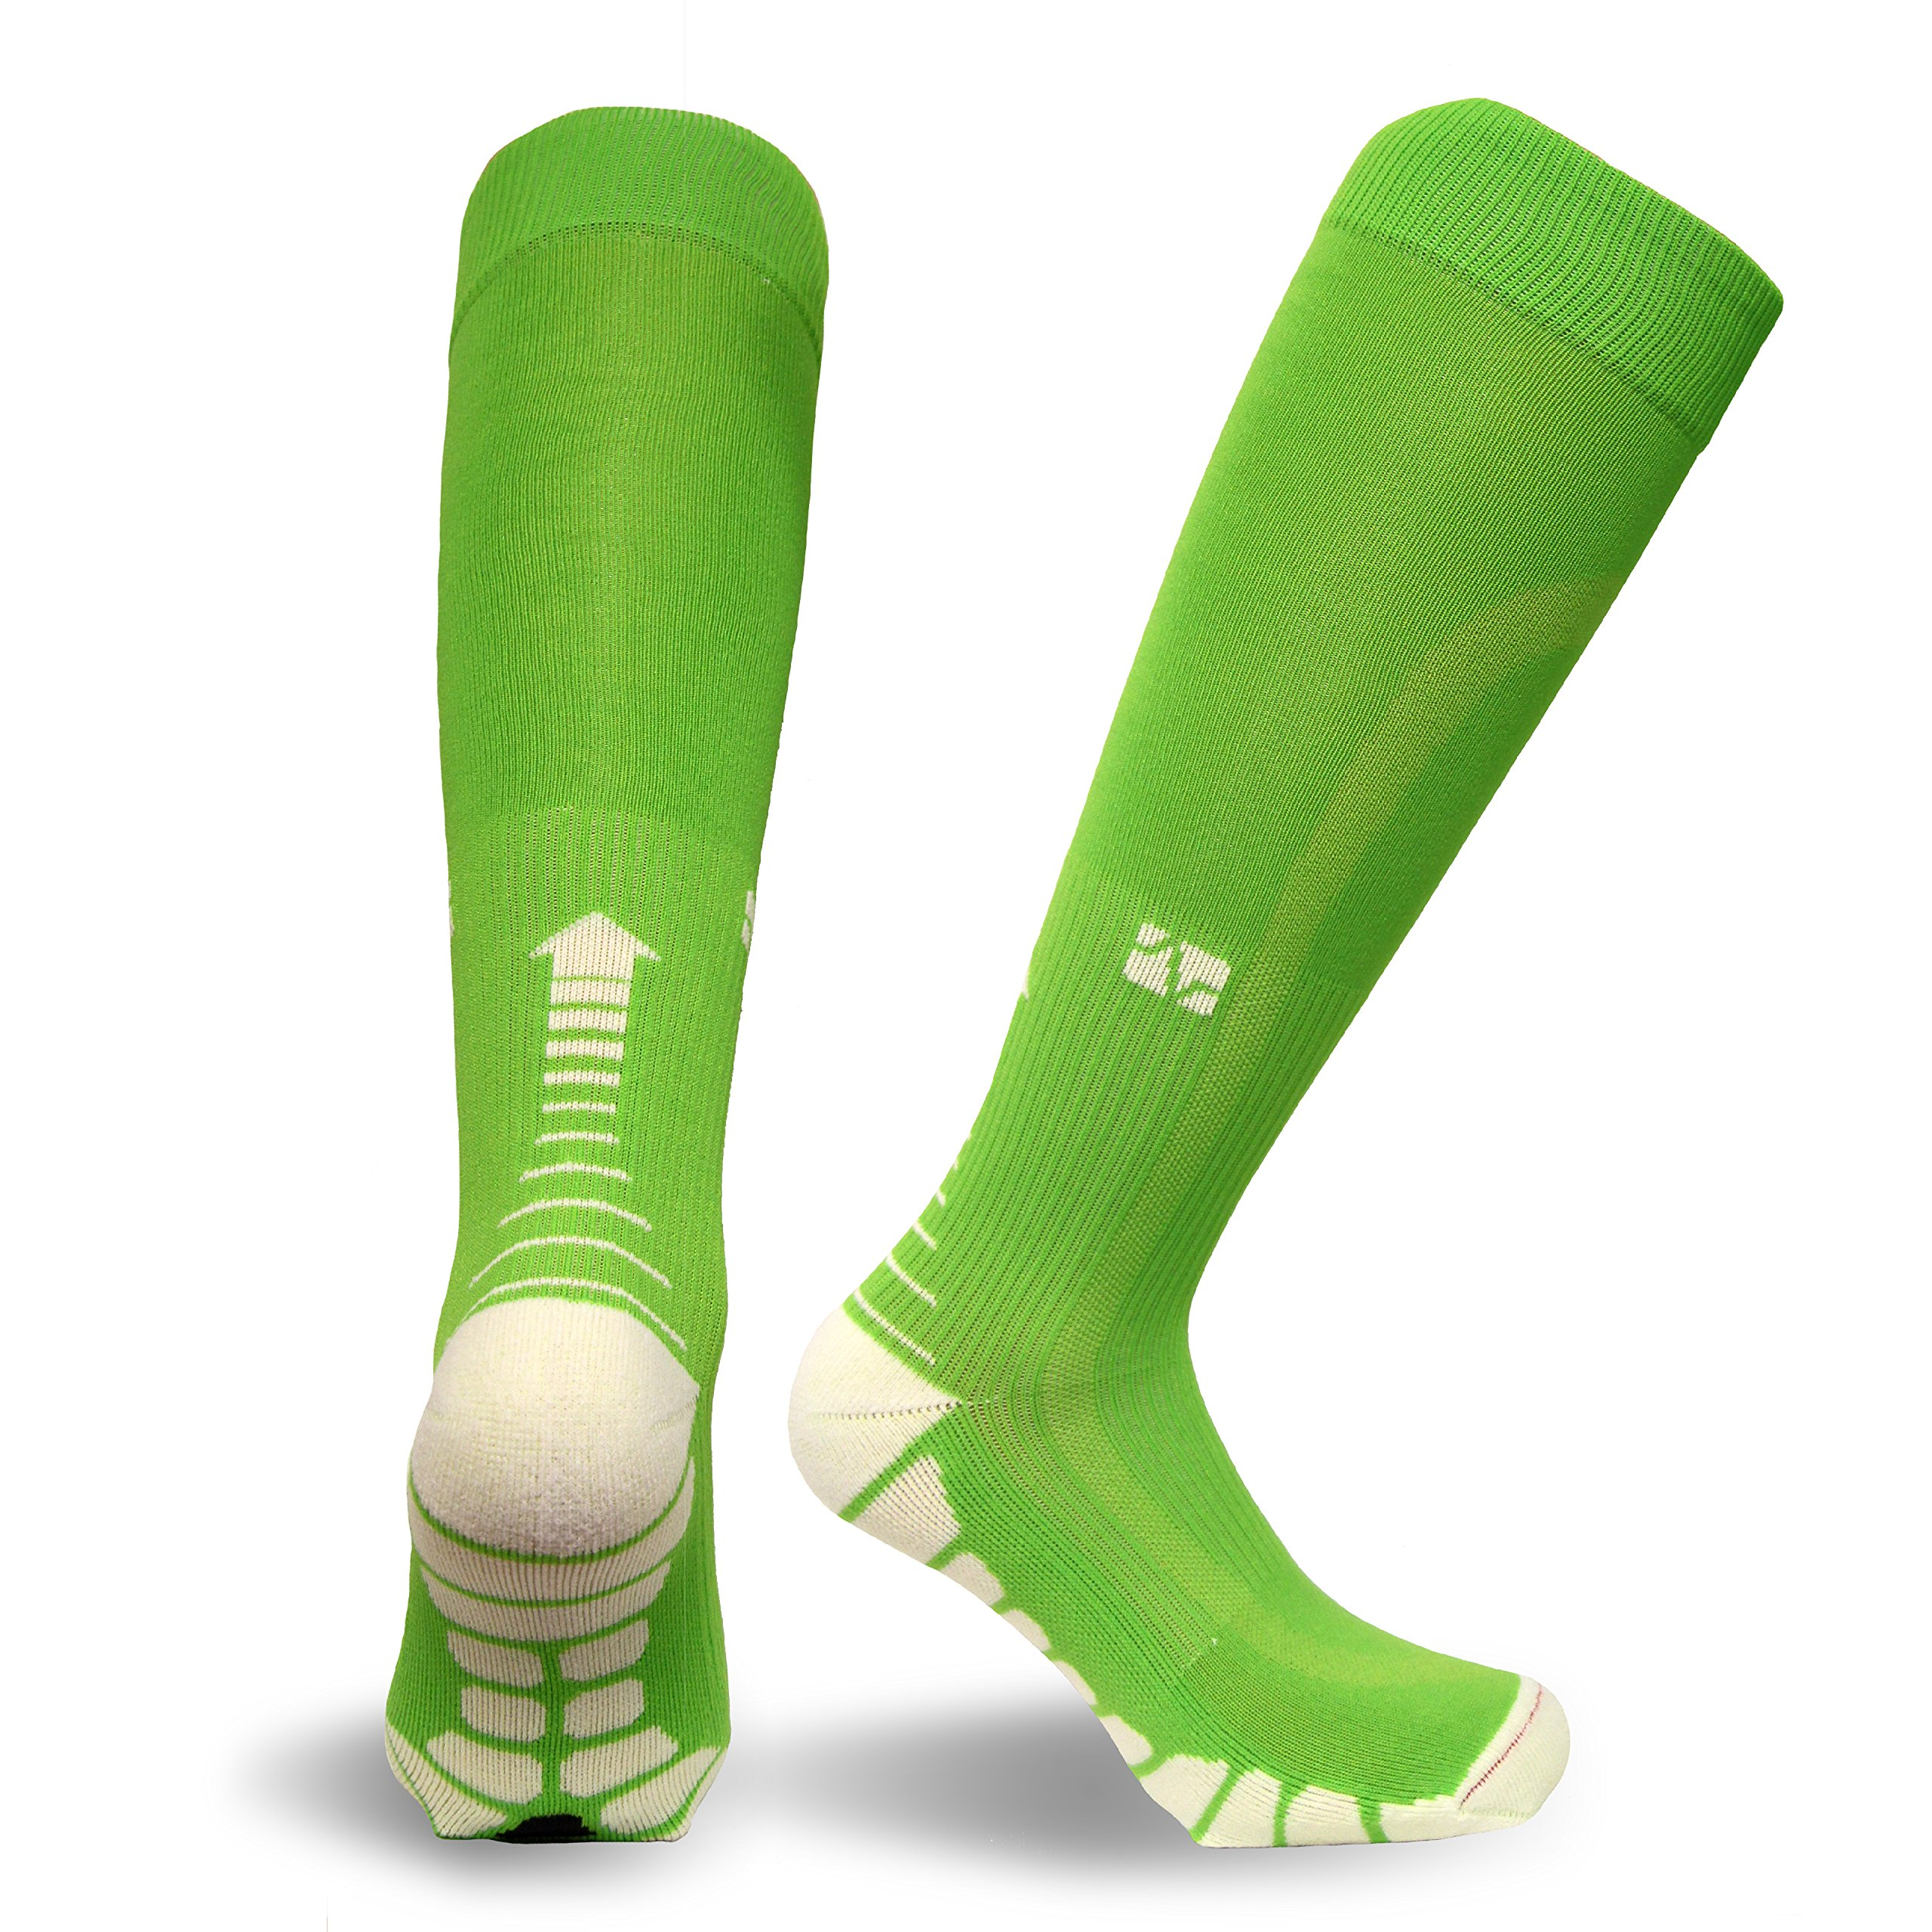 Vitalsox Italy-Patented Compression VT1211,X-Small,Lime Green